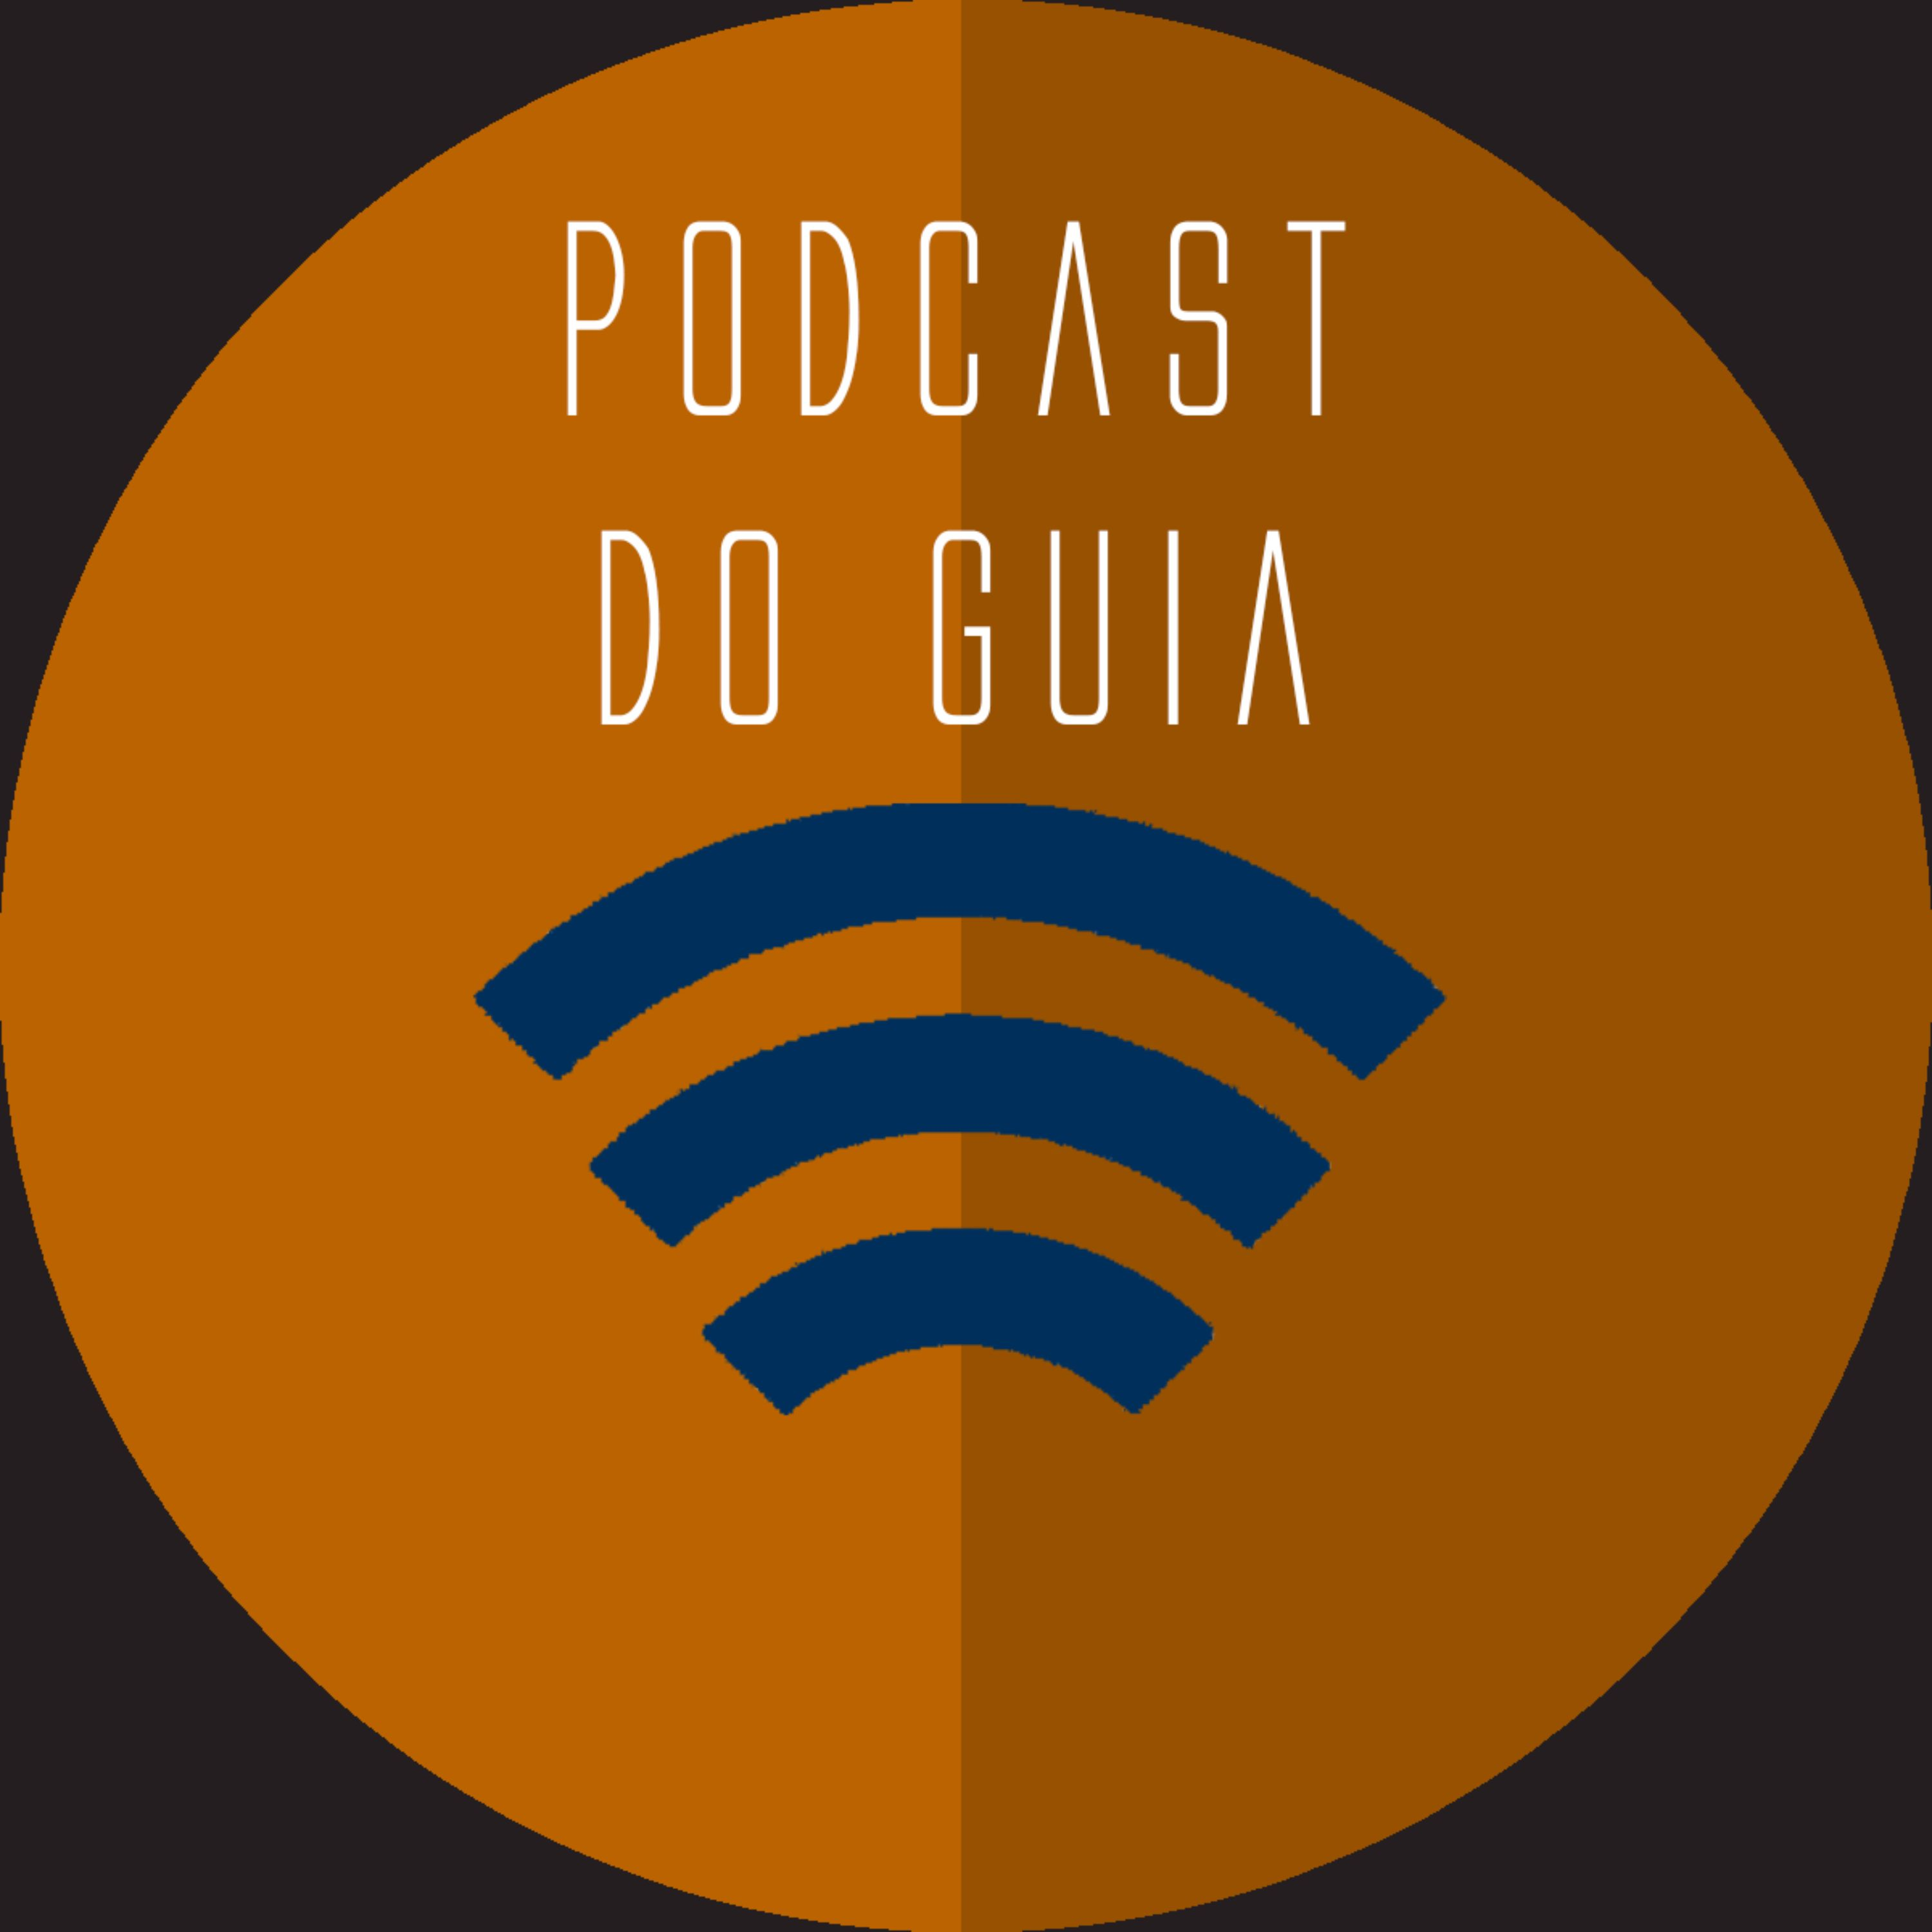 Podcast do Guia